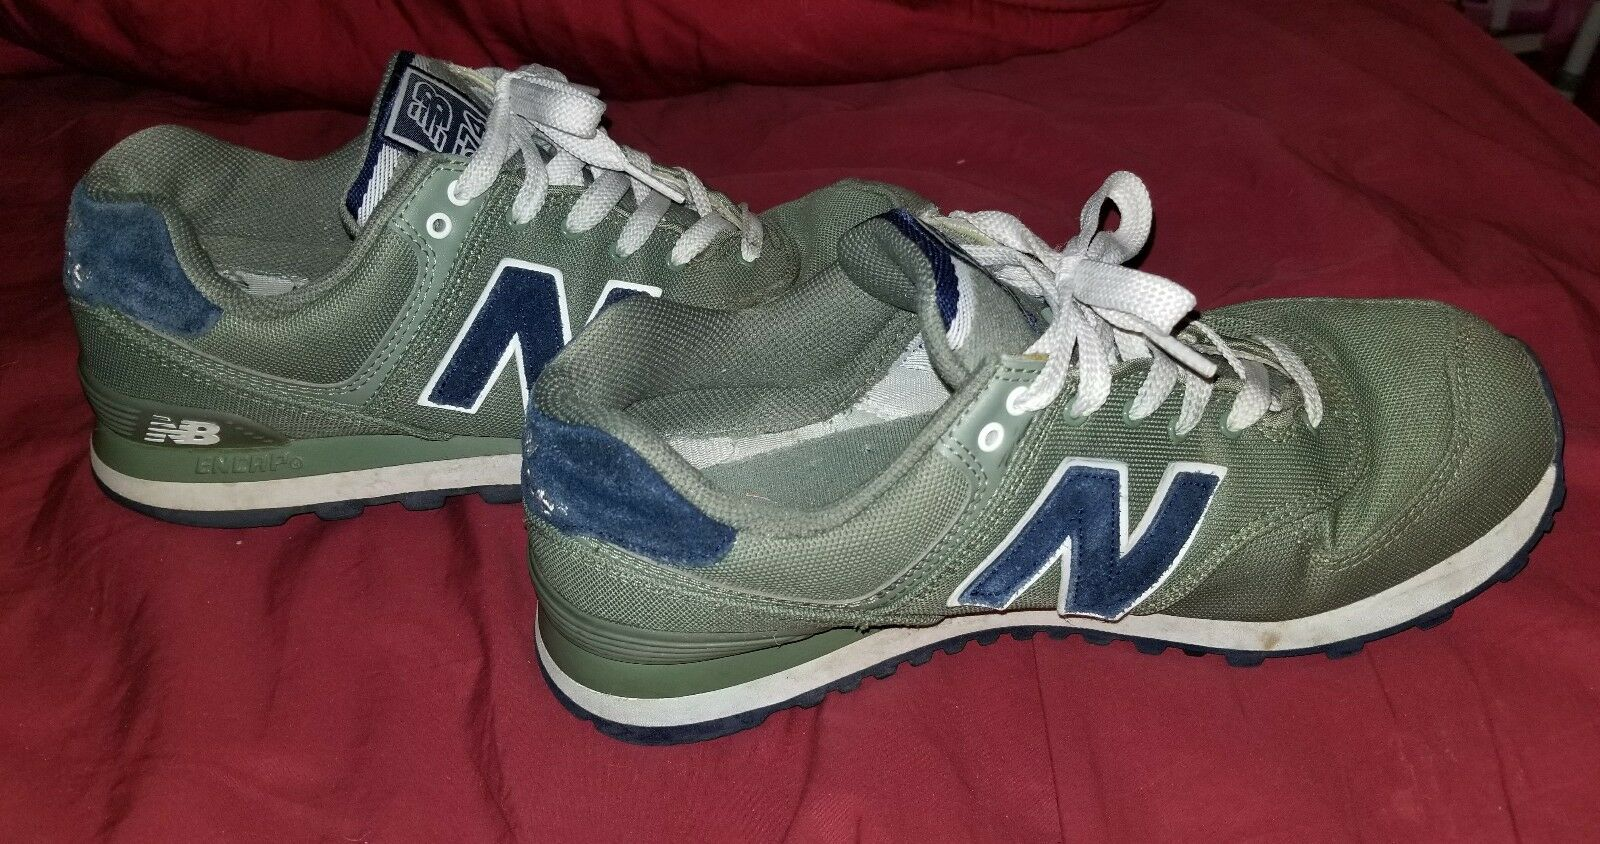 Men's New Balance 574s Olive Green  Navy bluee Size 8.5M EUC FREE SHIPPING